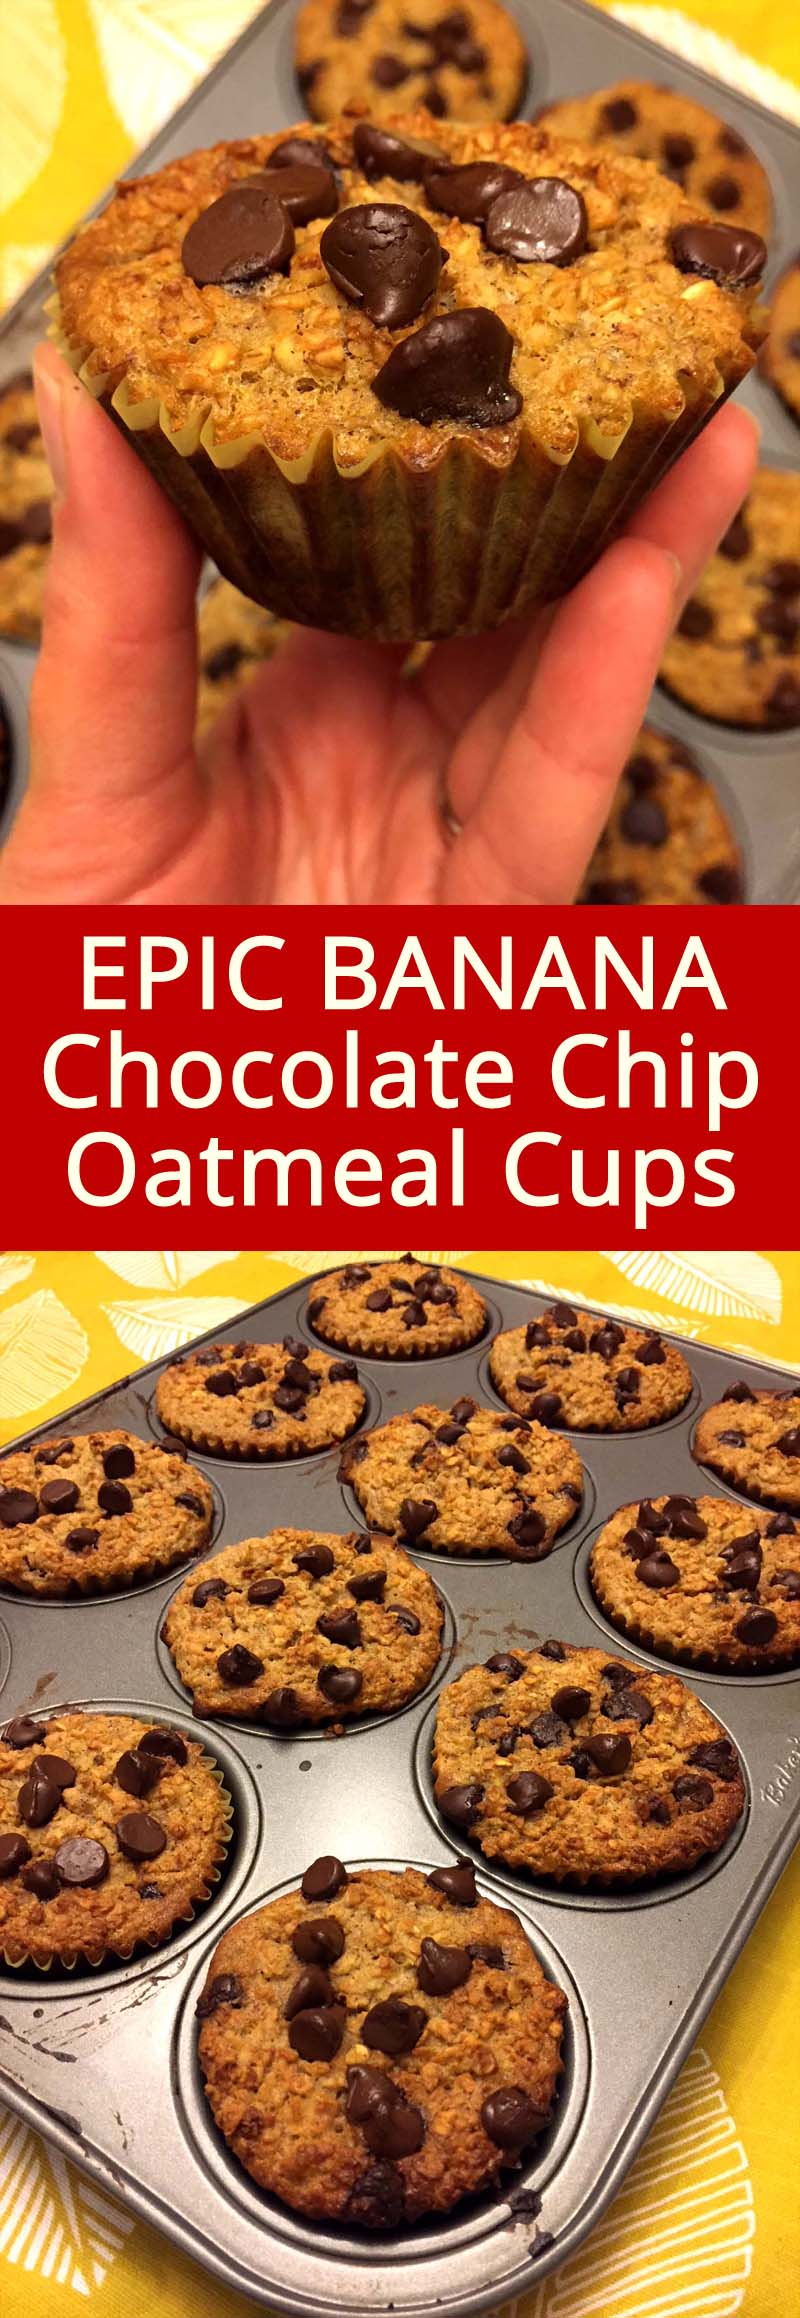 These banana chocolate chip baked oatmeal cups are my favorite breakfast!  They taste so good and they are so healthy! I also have a stash of these baked oatmeal cups in the freezer so I can have them anytime I want!